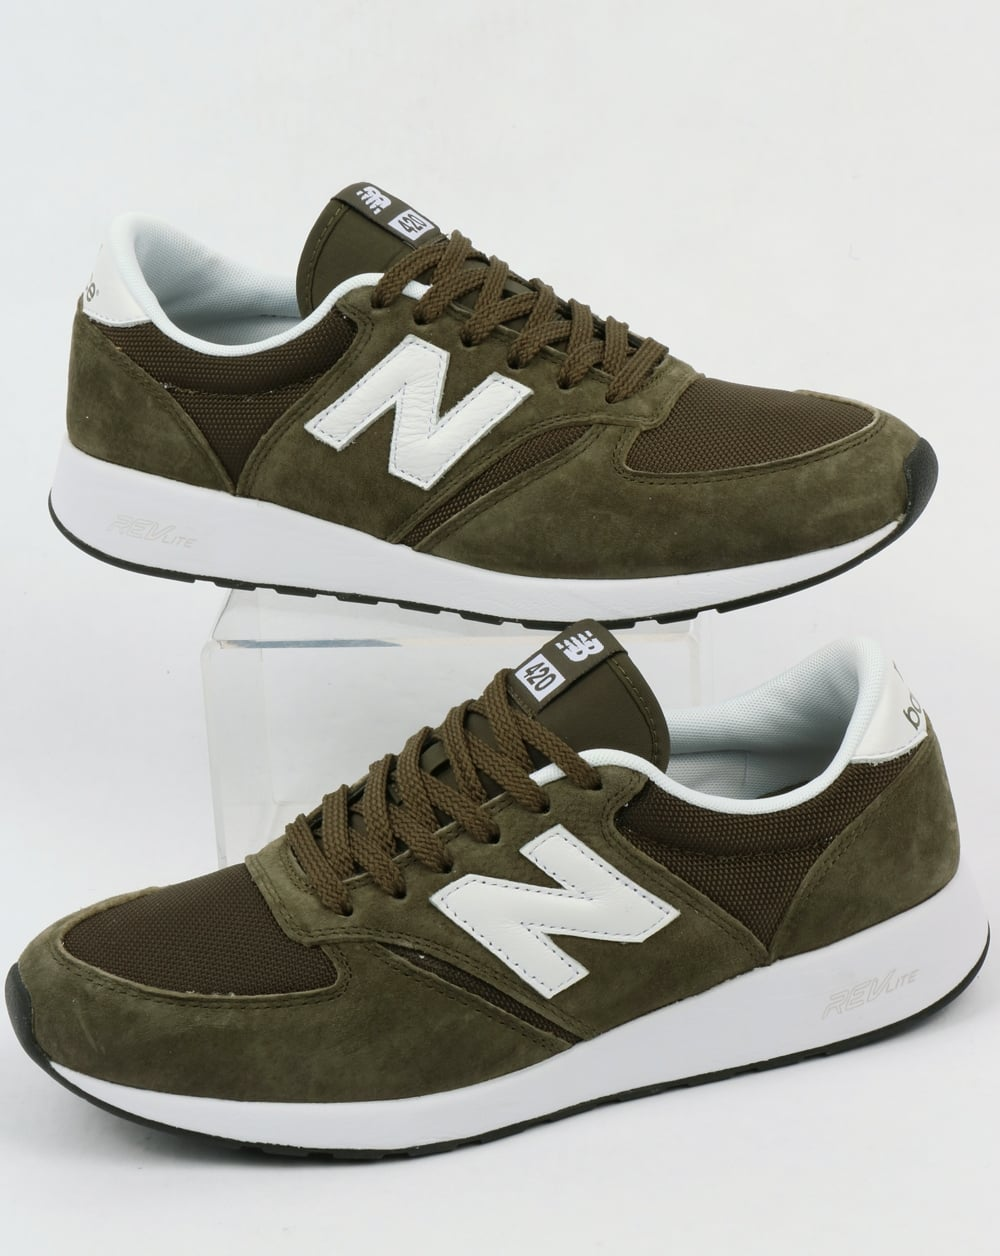 5b25a4b4caa5a New Balance 420 Re-Engineered Trainers Olive Green,shoes,running,70s